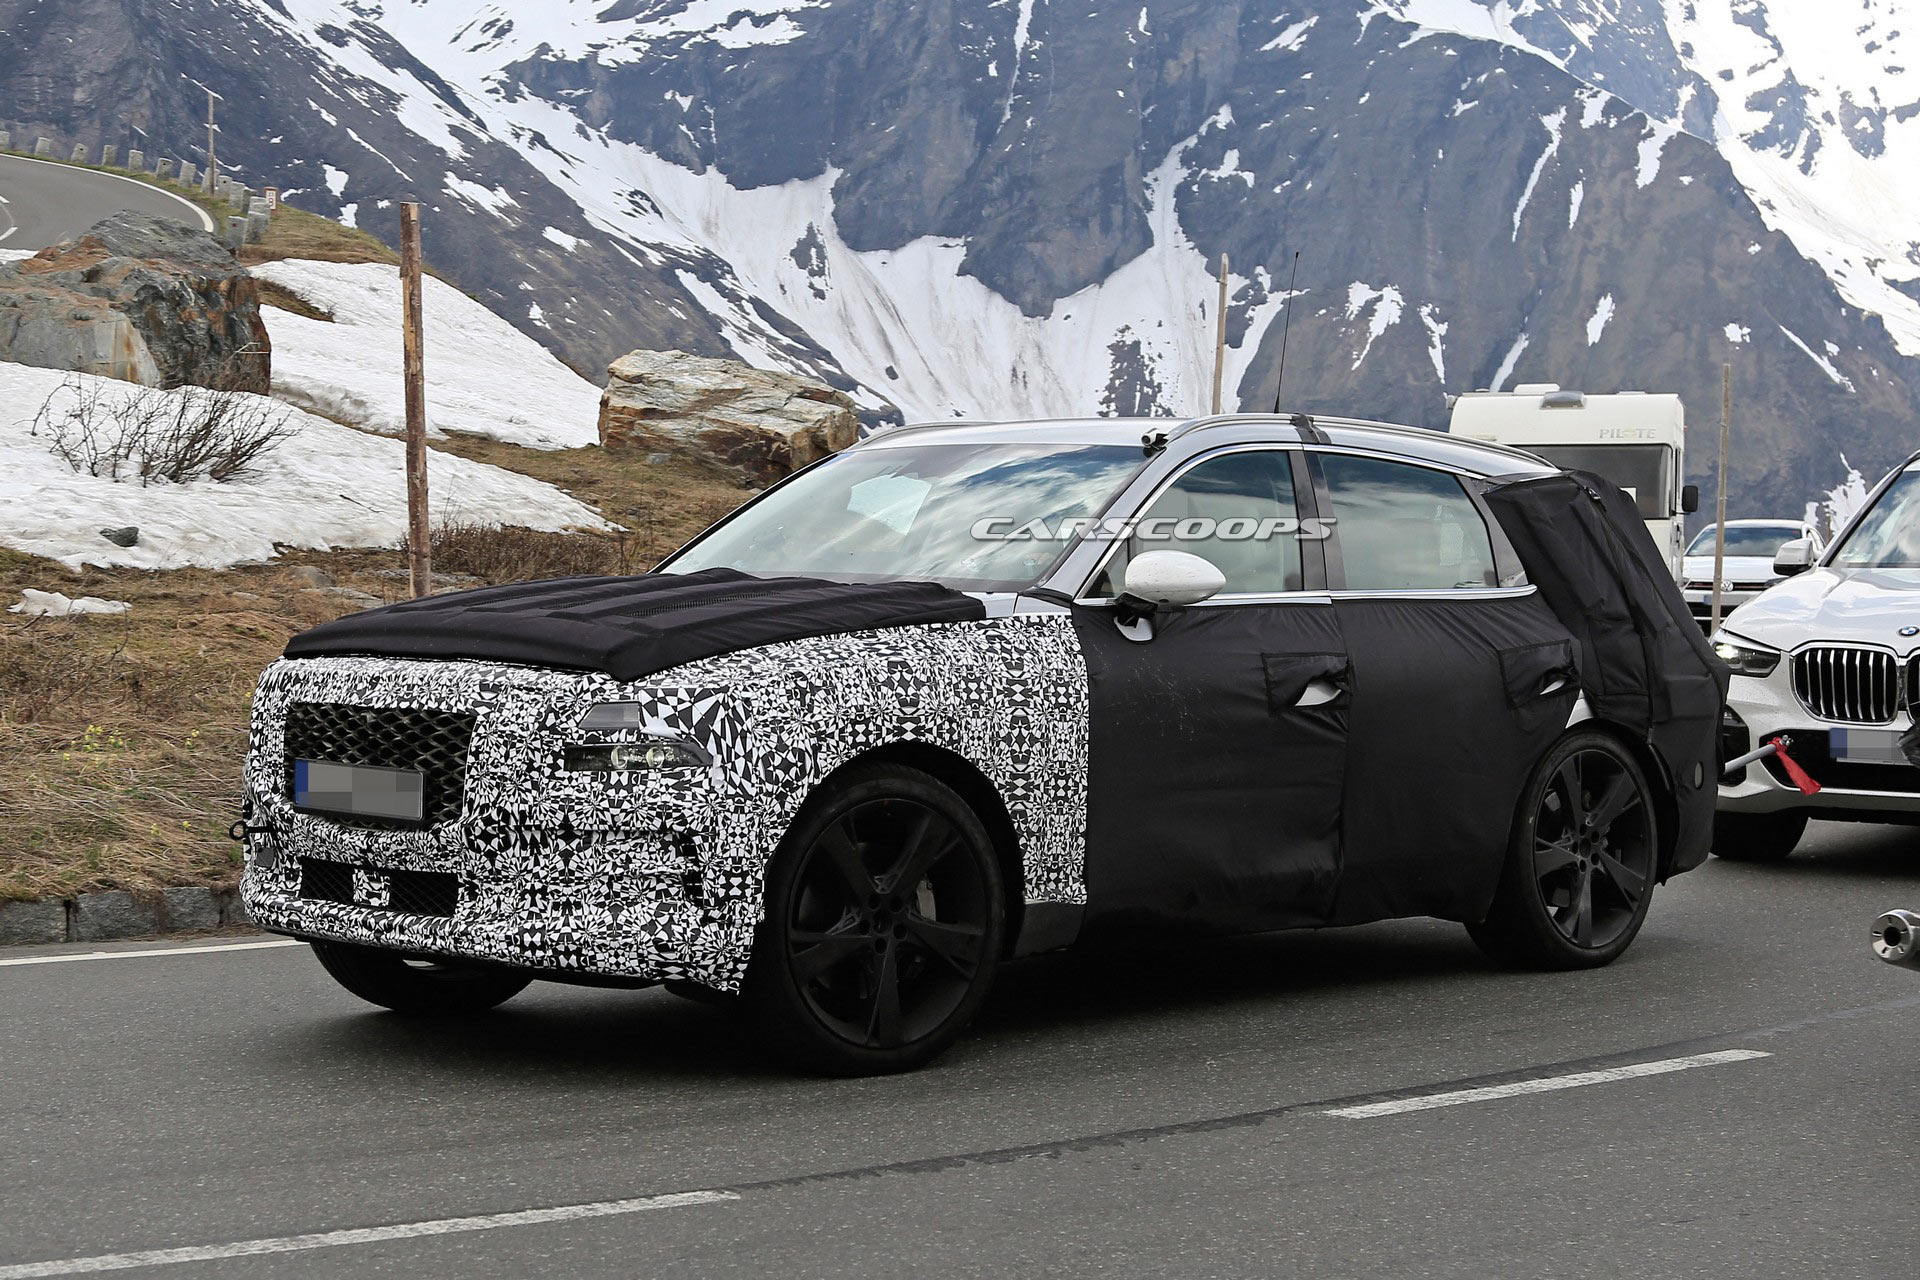 The production vehicle seems to have a rather bold front fascia design complete with tetragonal headlights, wide air intakes and a radiator grille with a honeycomb mesh pattern